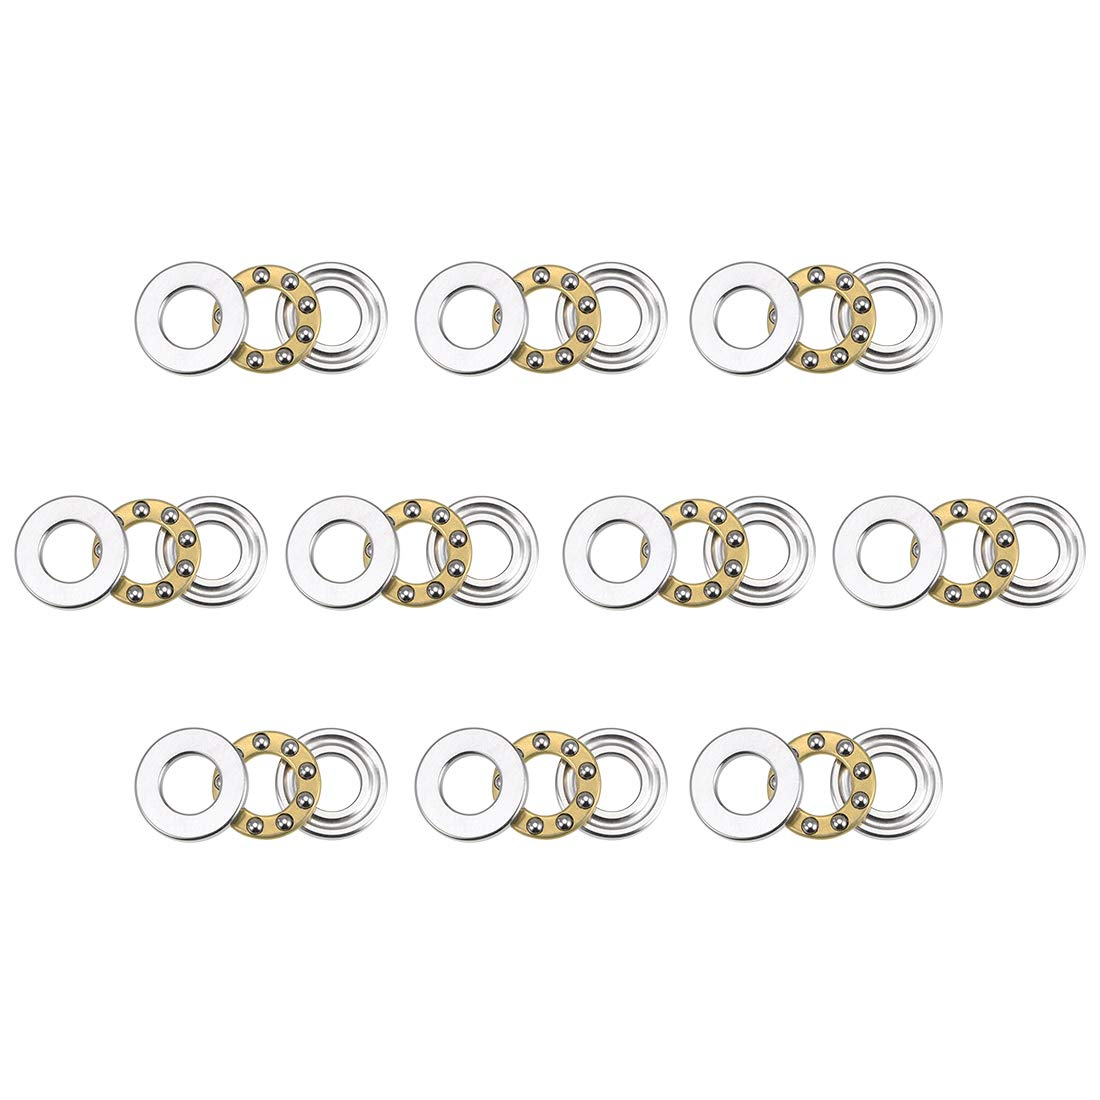 uxcell F6-12M Miniature Thrust Ball Bearings 6mm x 12mm x 4.5mm Chrome Steel with Washers 10 Pcs